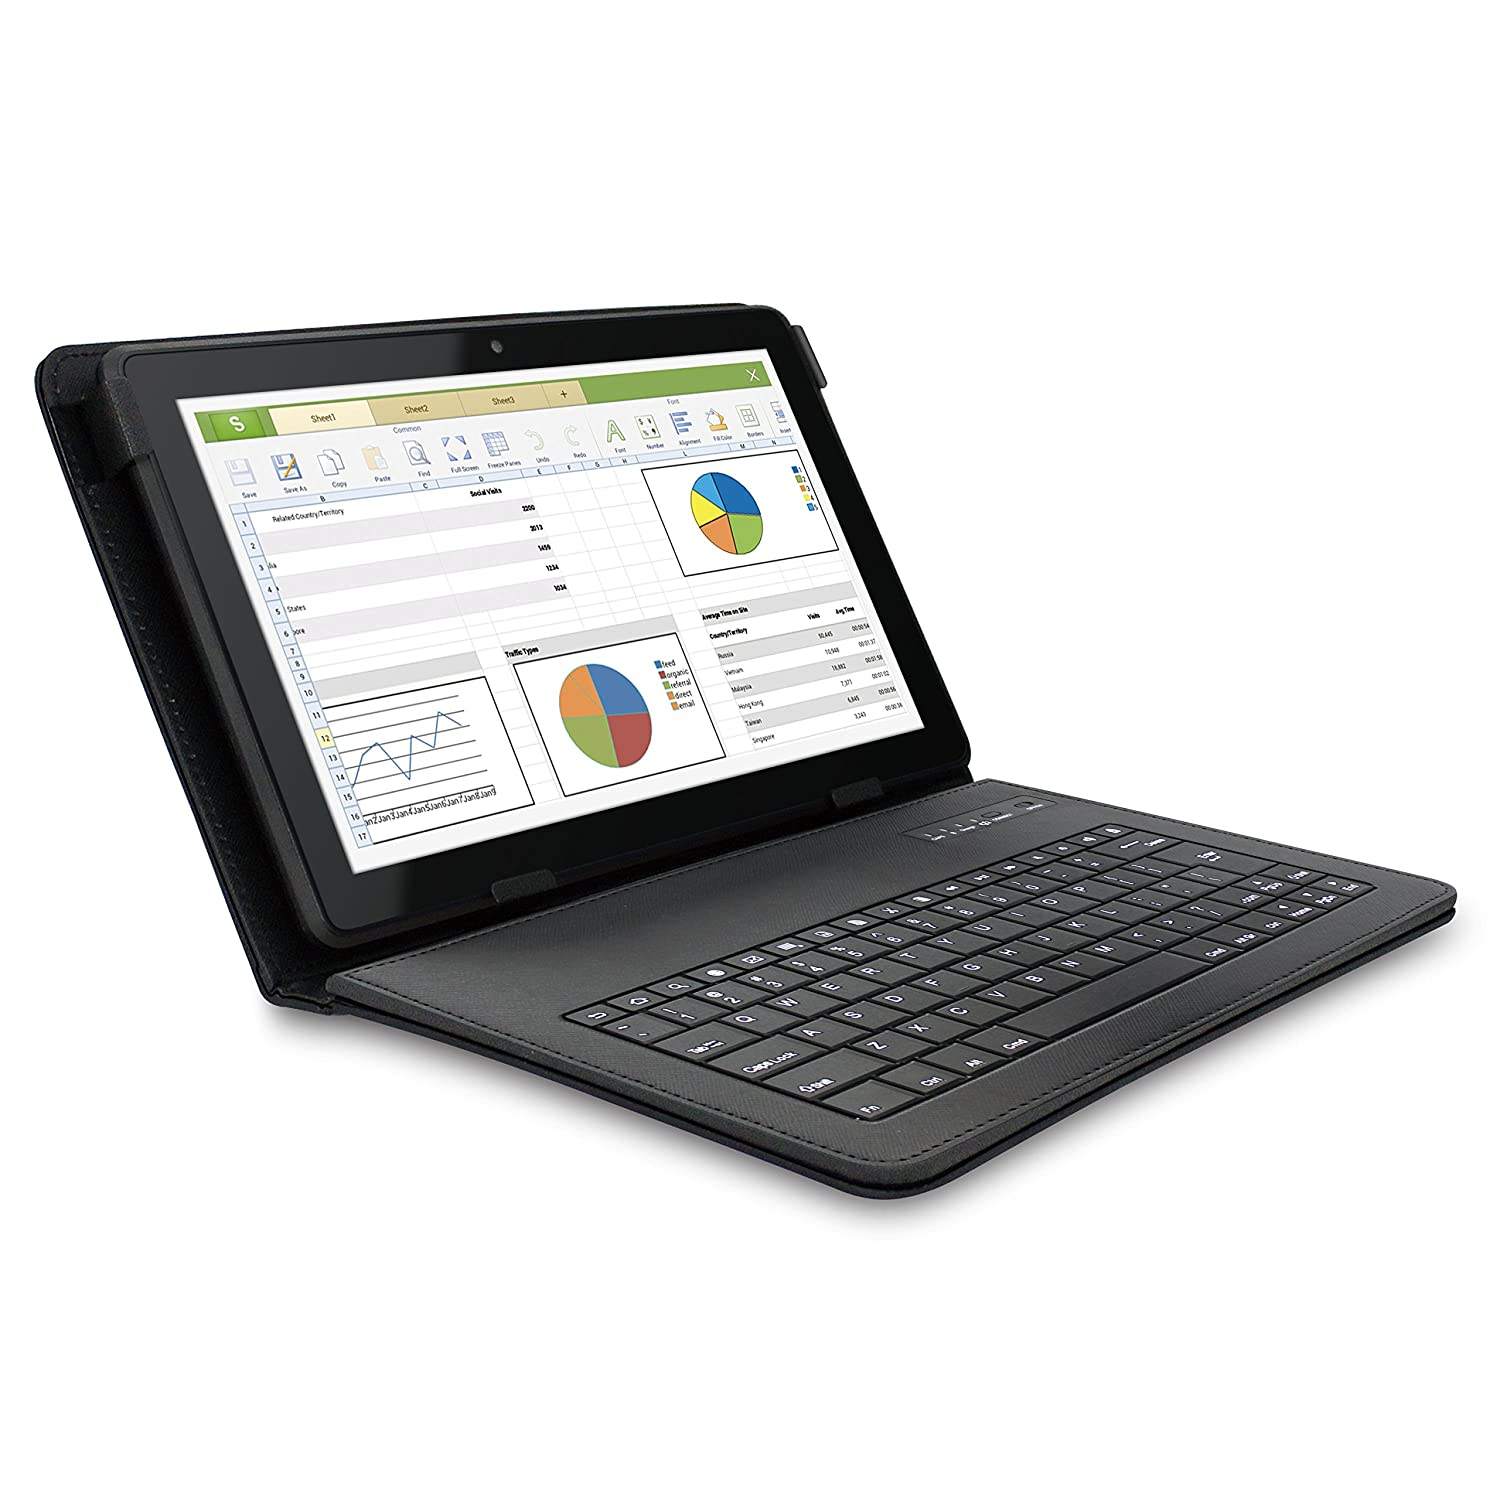 Amazon.com: RCA Pro10 Edition 10.1 Inch Tablet with Folio Keyboard Case and Dual Camera - 16GB (Android 4.2.2 Jelly Bean, Google Play), ...